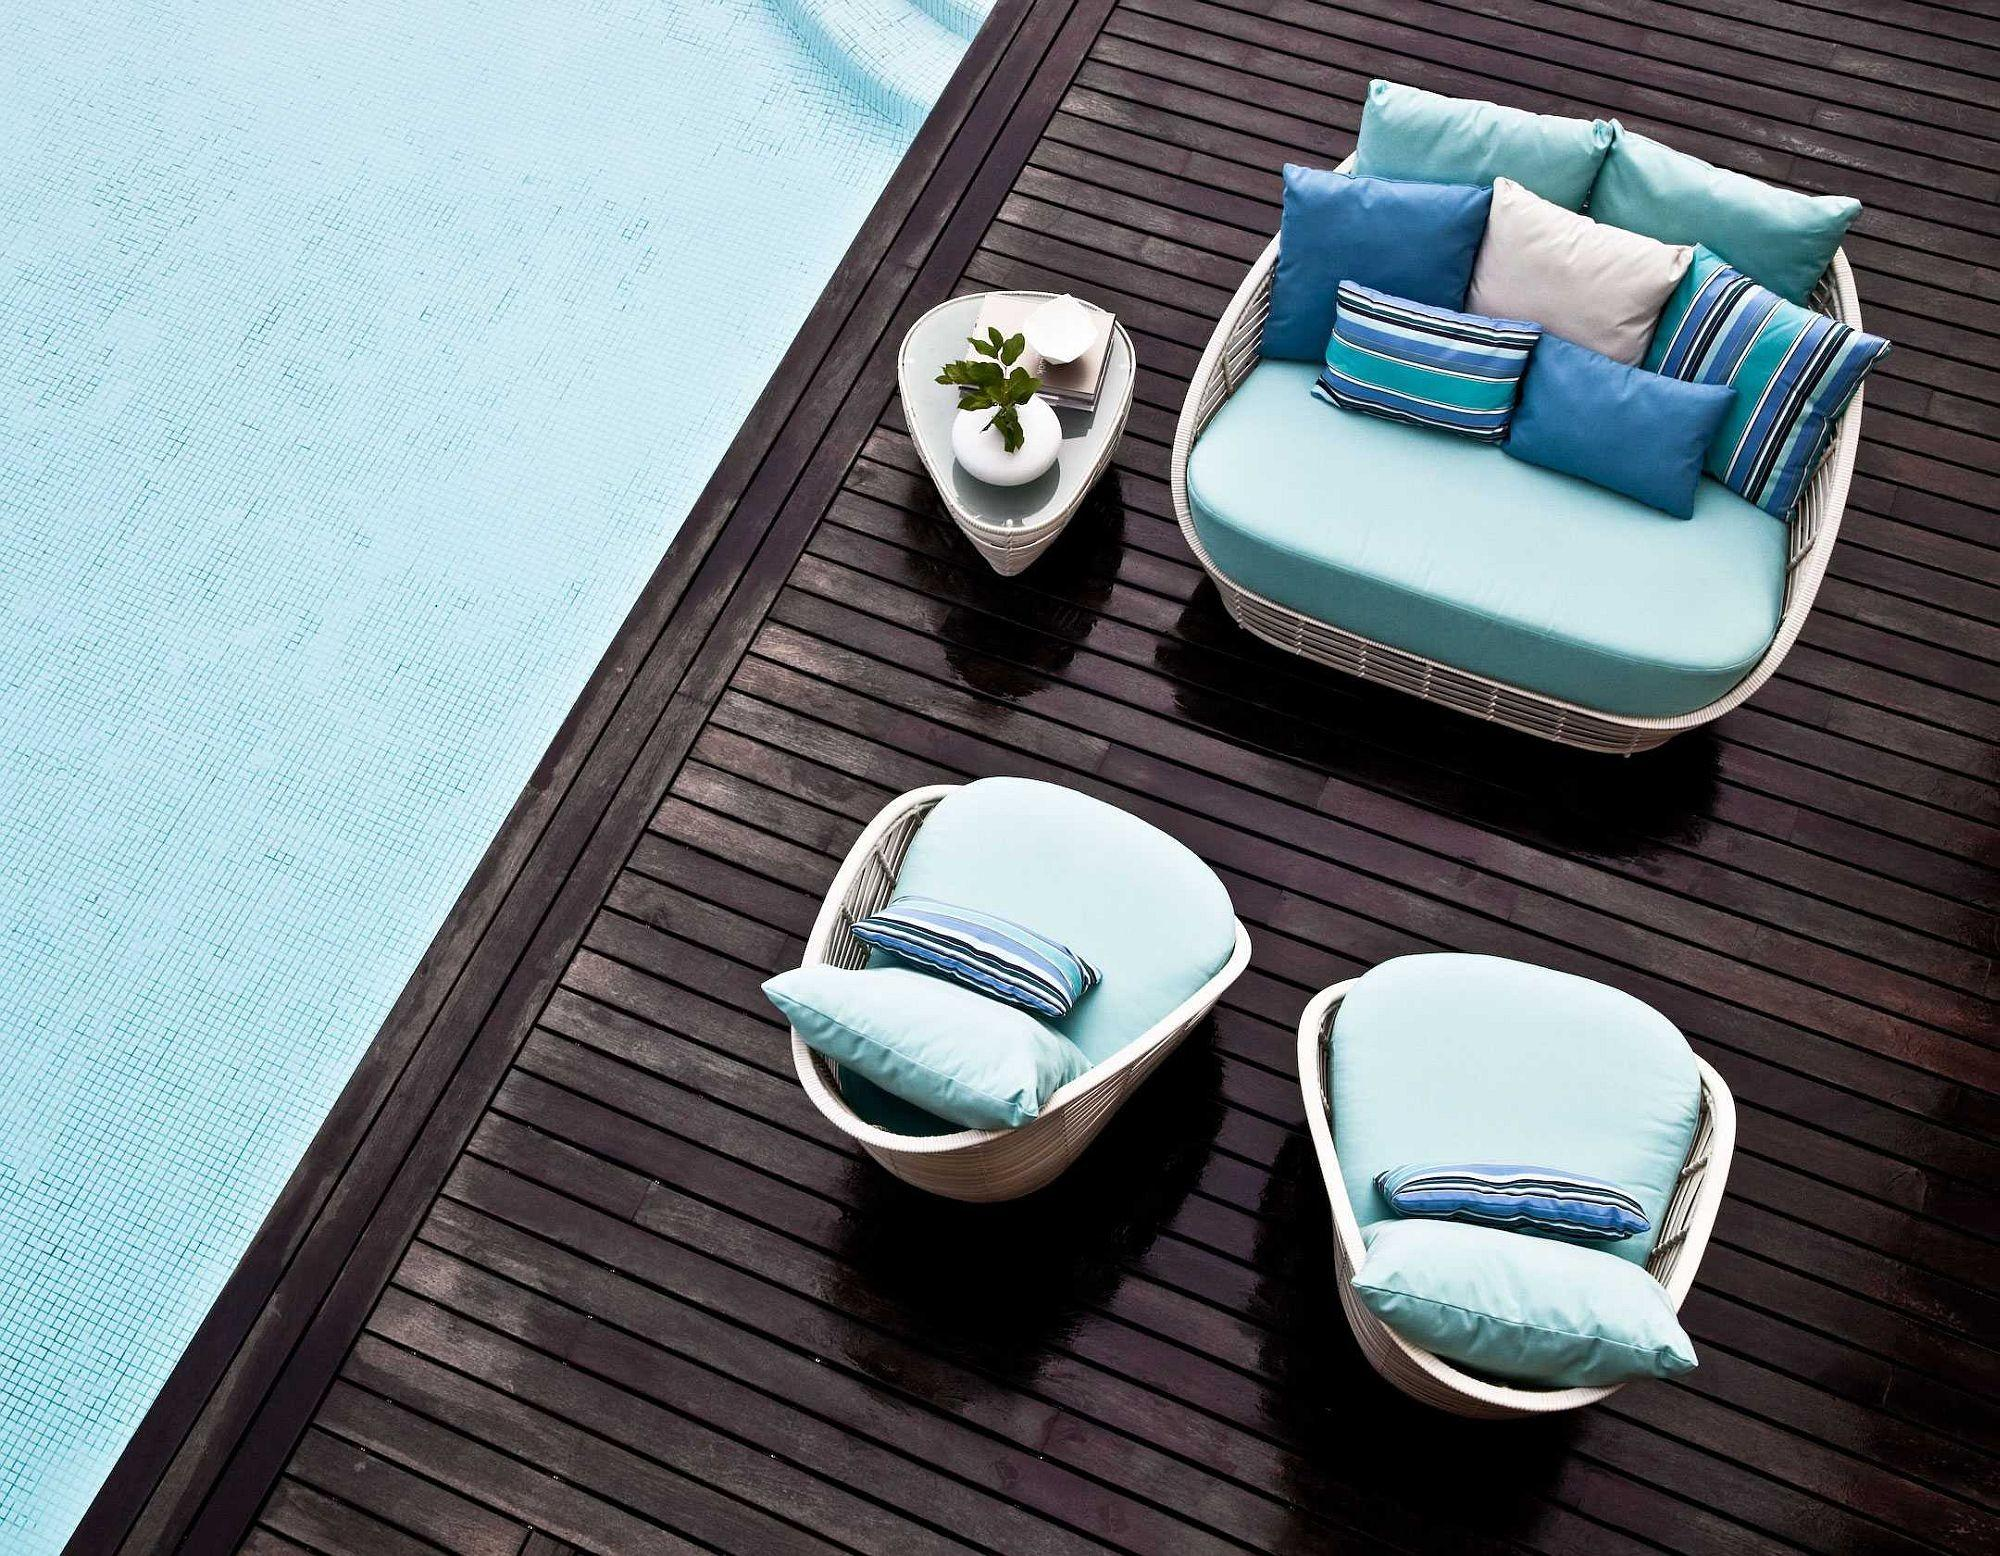 Contemporary Outdoor Cor Polished Sculptural Style